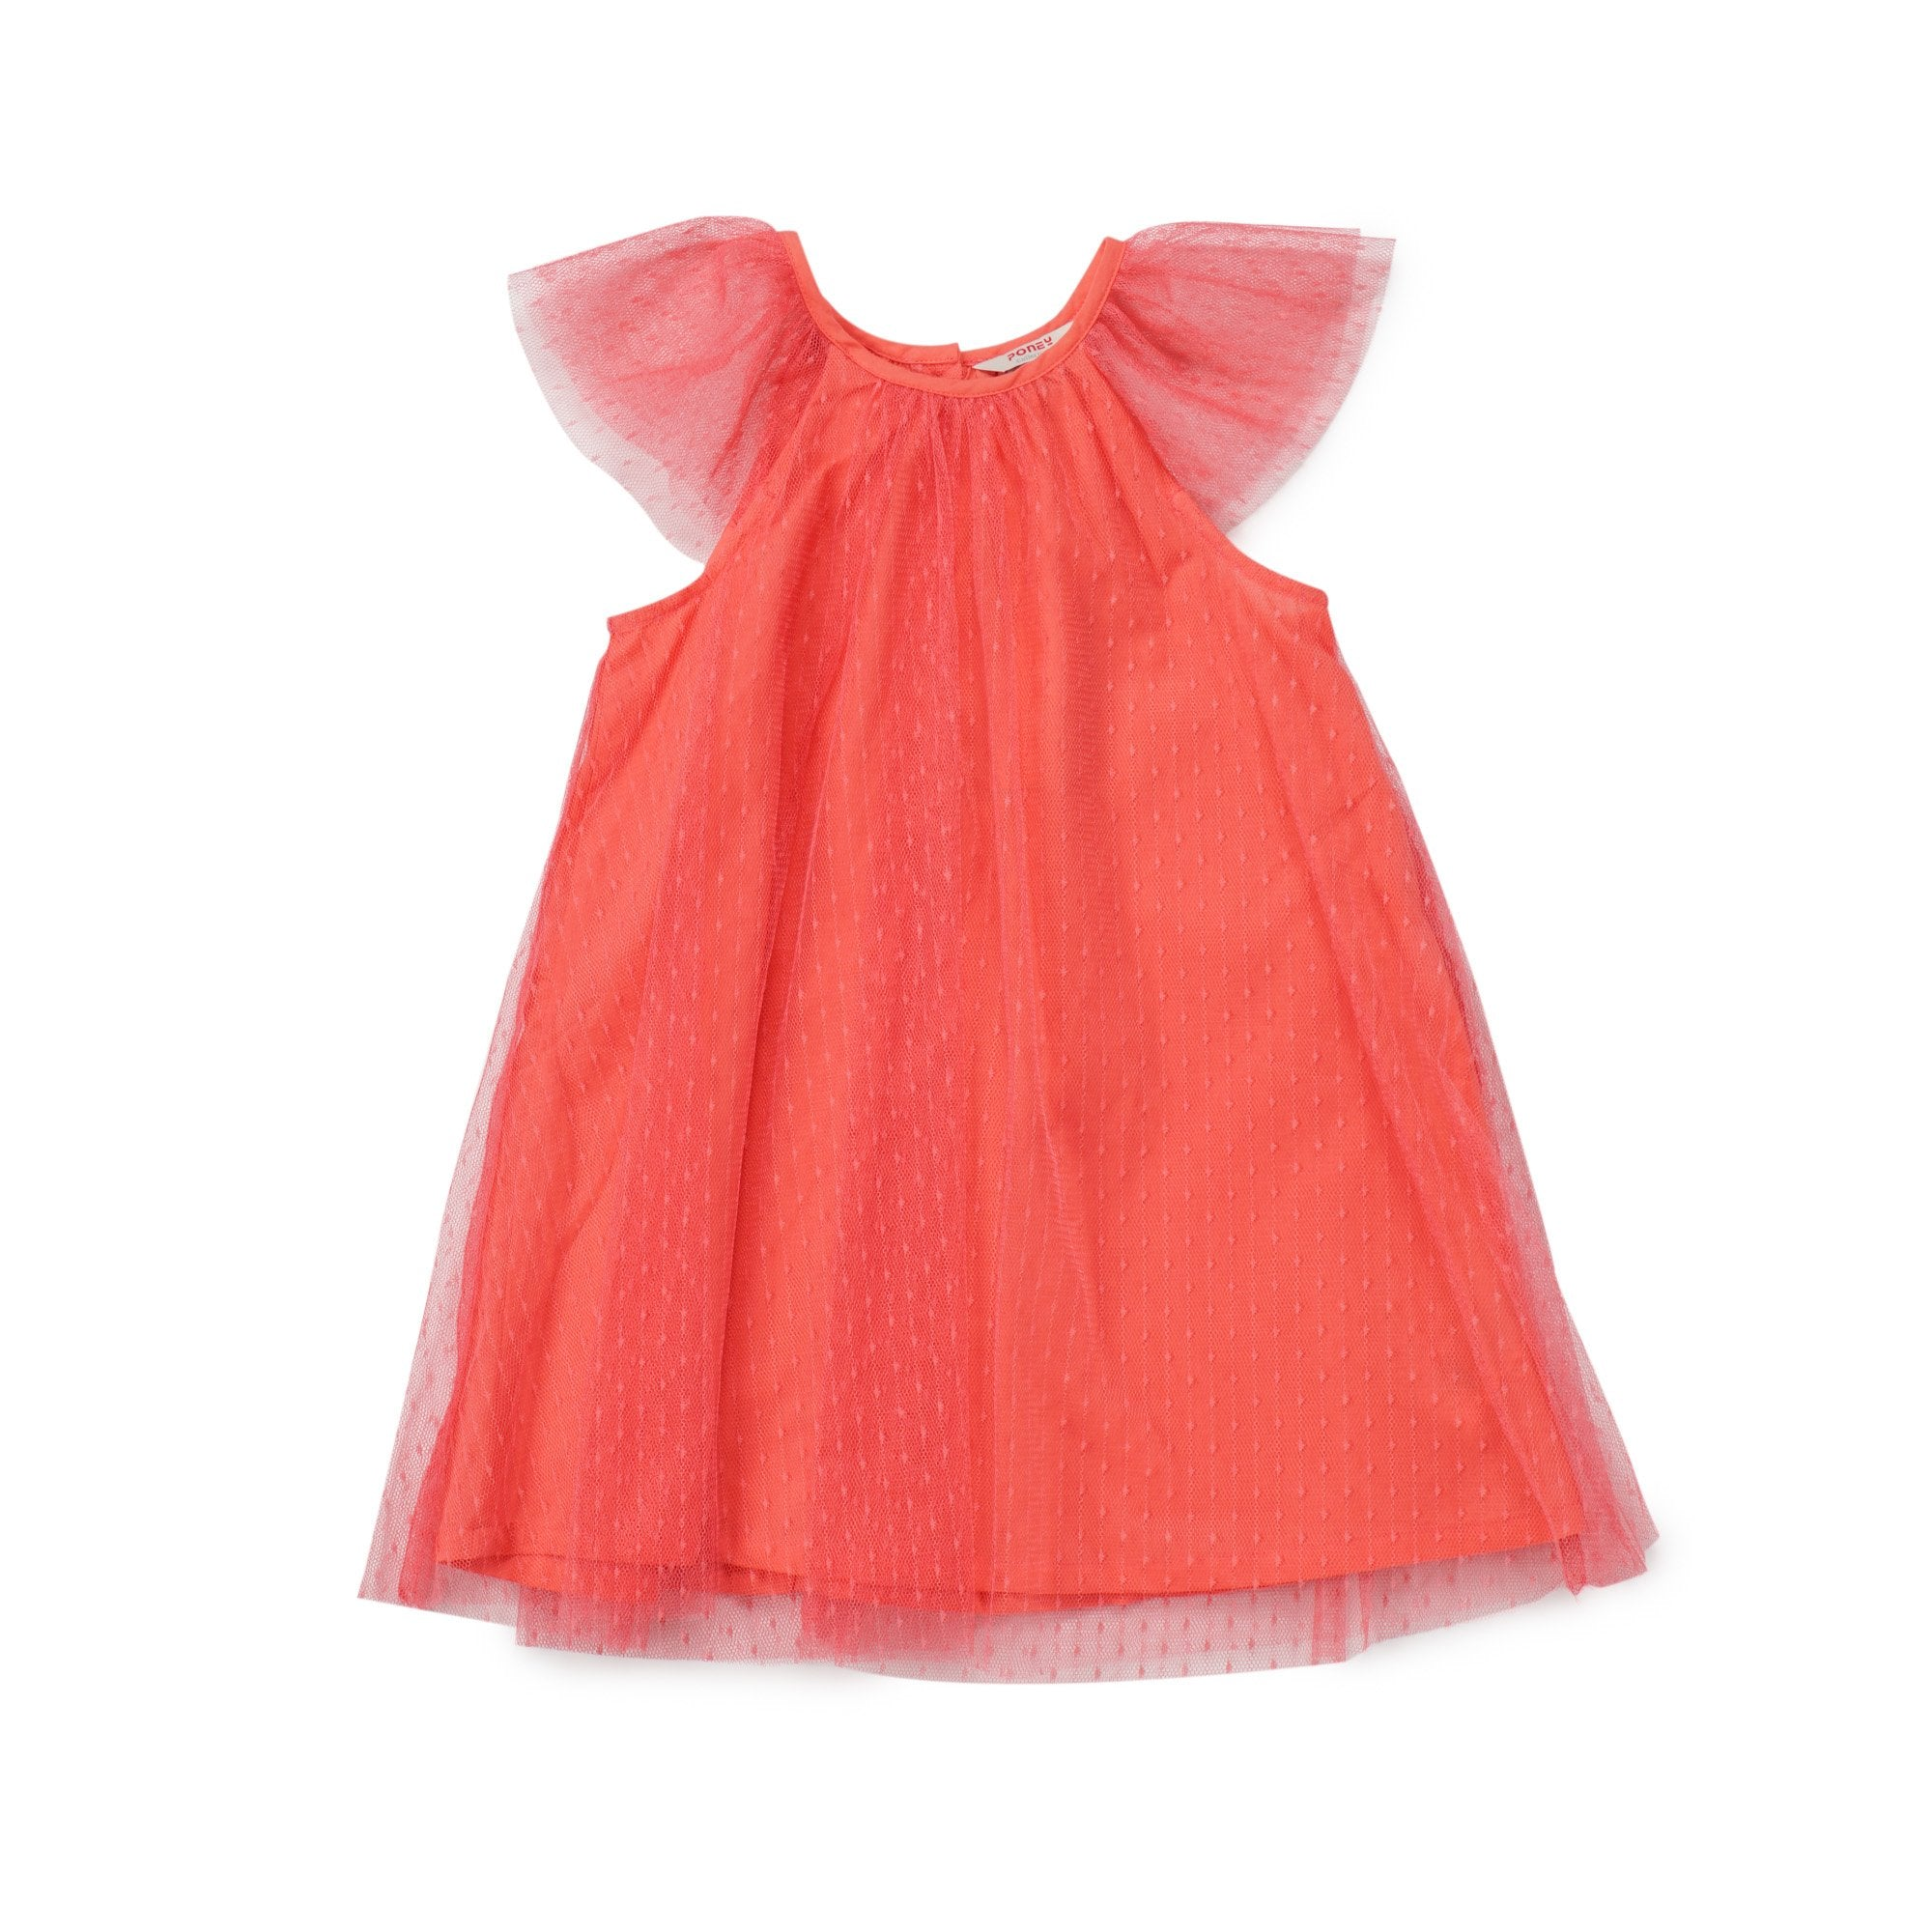 Poney Girls Sleeveless Dress 8323 (6mths-12yrs)